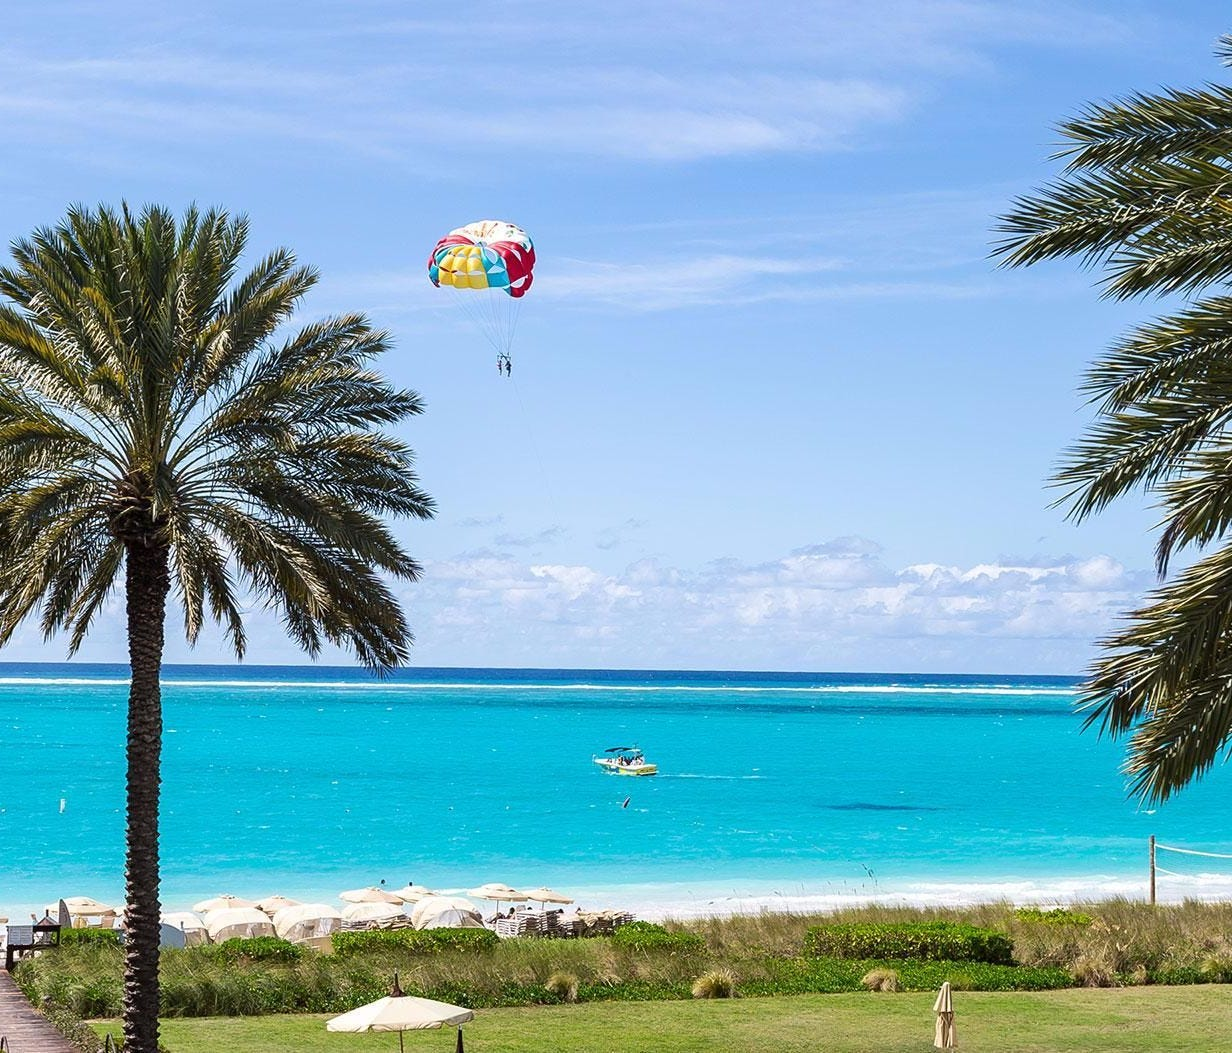 TripAdvisor's top-ranked beach in the world is Grace Bay, Providenciales, Turks and Caicos.   • Beachfront bargain hotel nearby: Ports of Call Resort, from $270 per night on TripAdvisor  • Great airfare found on TripAdvisor: As low as $364 round-trip f